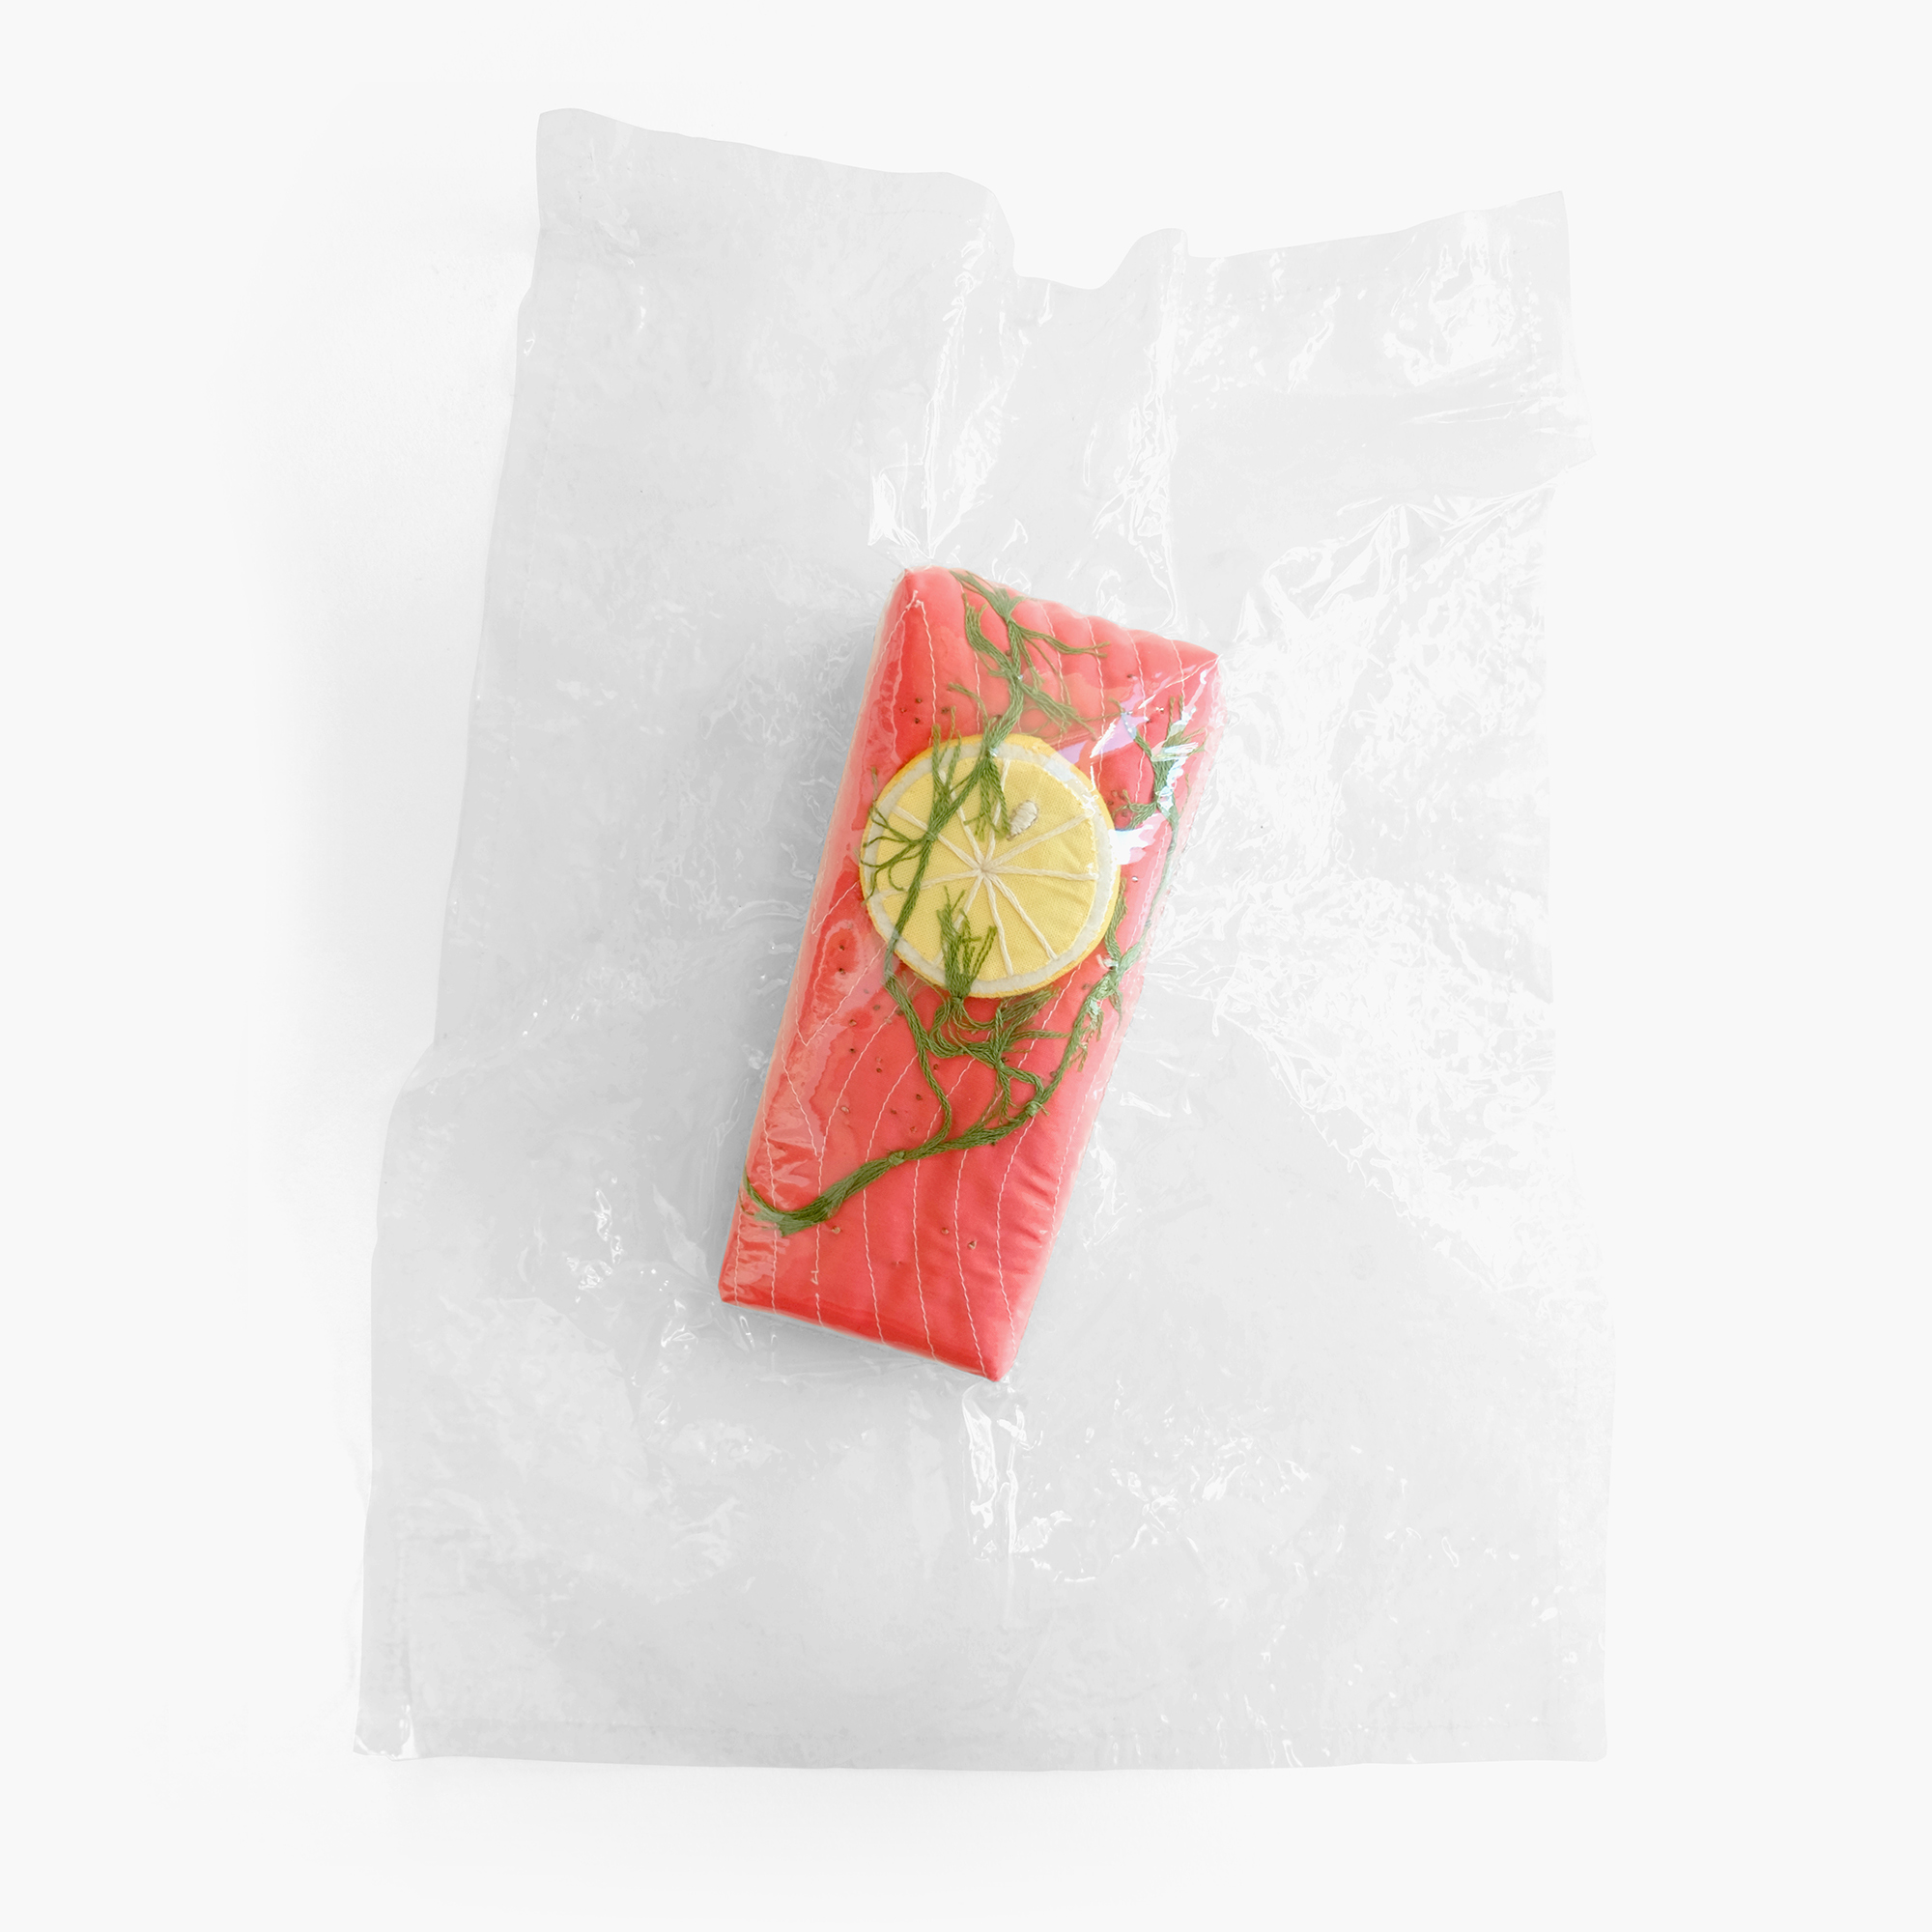 Sous Vide for One    Salmon with lemon   Foam, felt, cotton cloth, embroidery floss, vinyl 2 x 14 x 11 in 2014